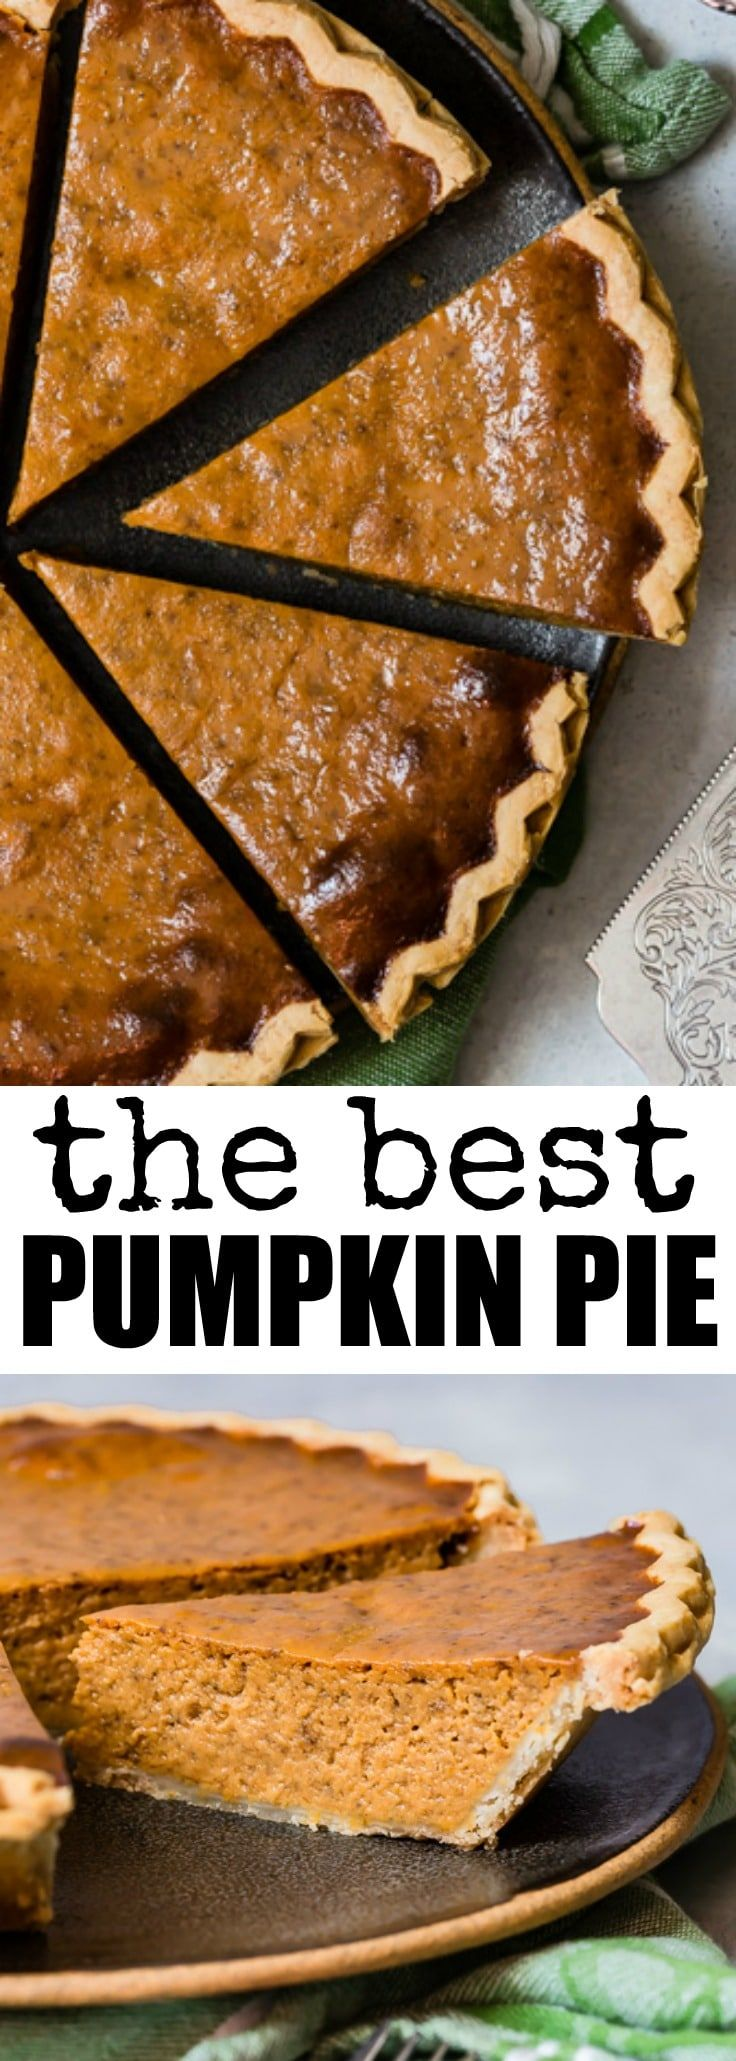 The Best Pumpkin Pie is the one that's easiest to make! Start with a store-bought crust, whisk together a tasty filling, and bake to pumpkin pie perfection.